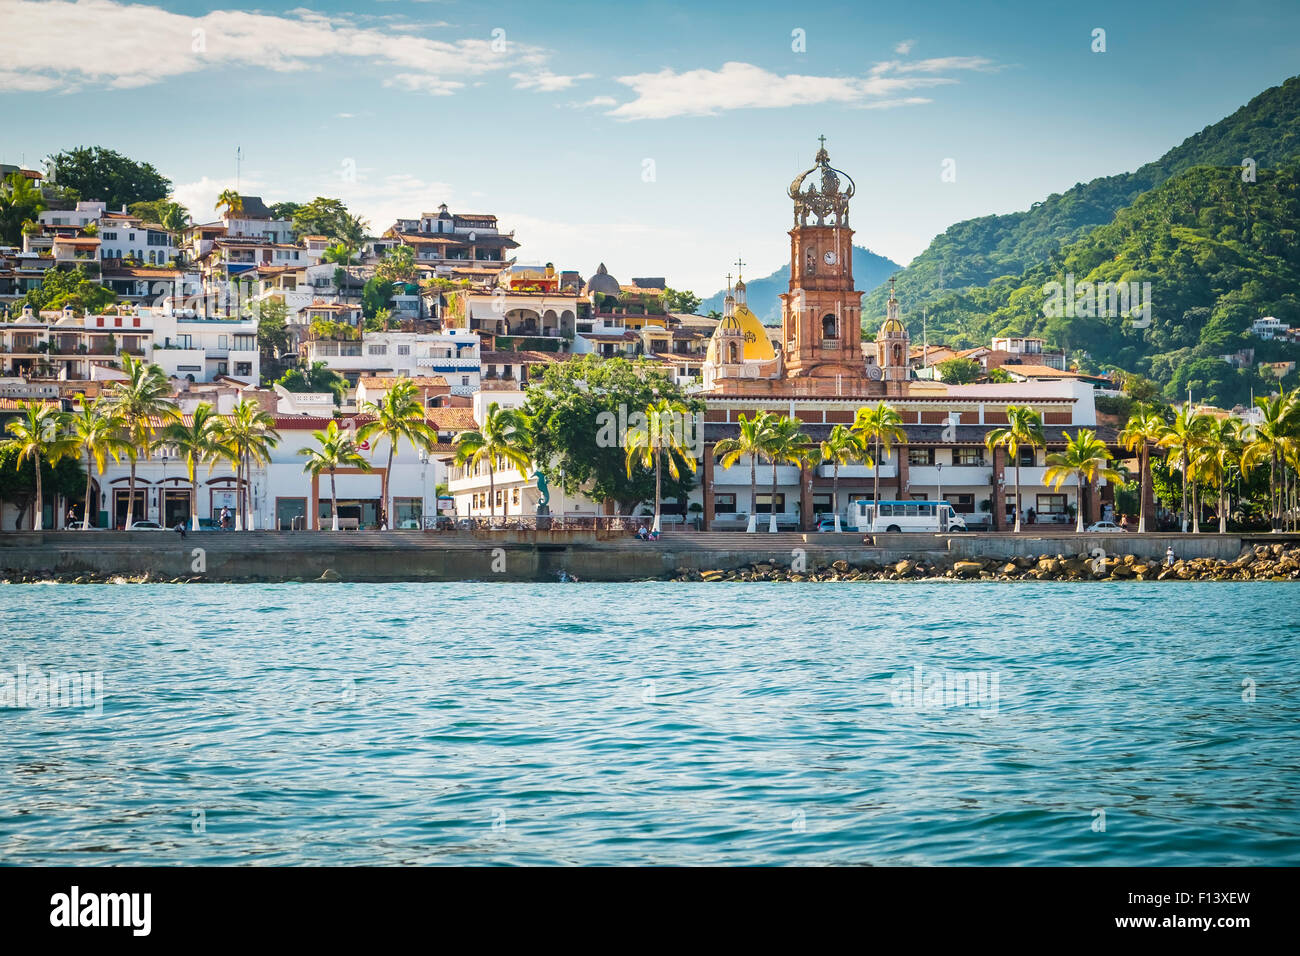 Colonia El Centro with church tower, Banderas Bay Coast Line, Puerto Vallarta, Mexico Stock Photo